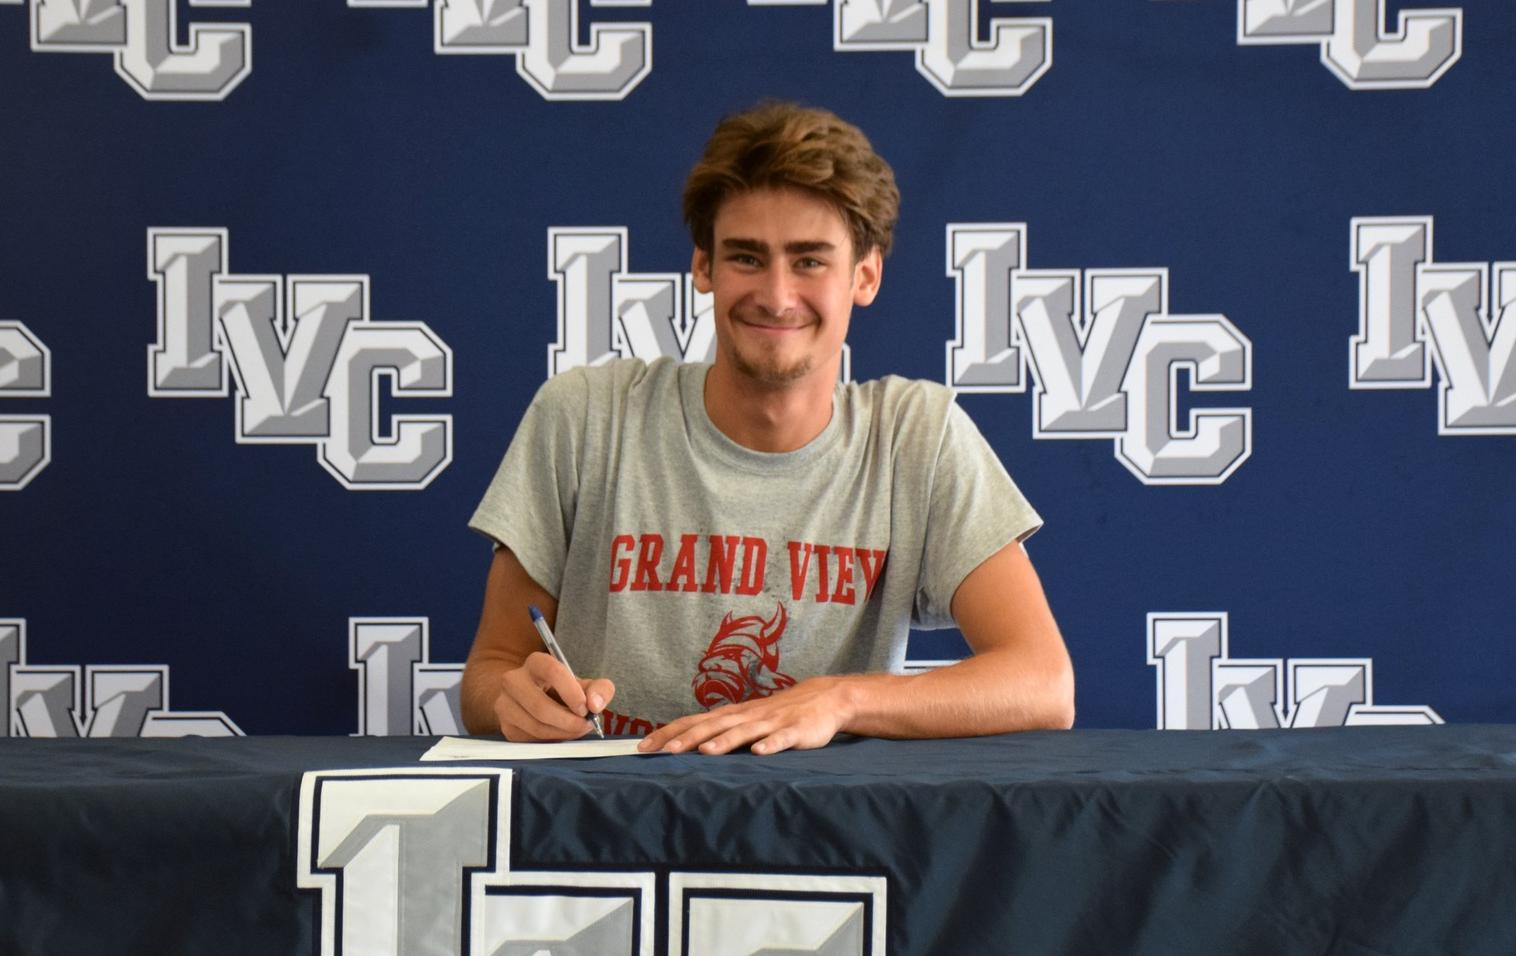 Men's volleyball player Pat Furlong headed to Grand View